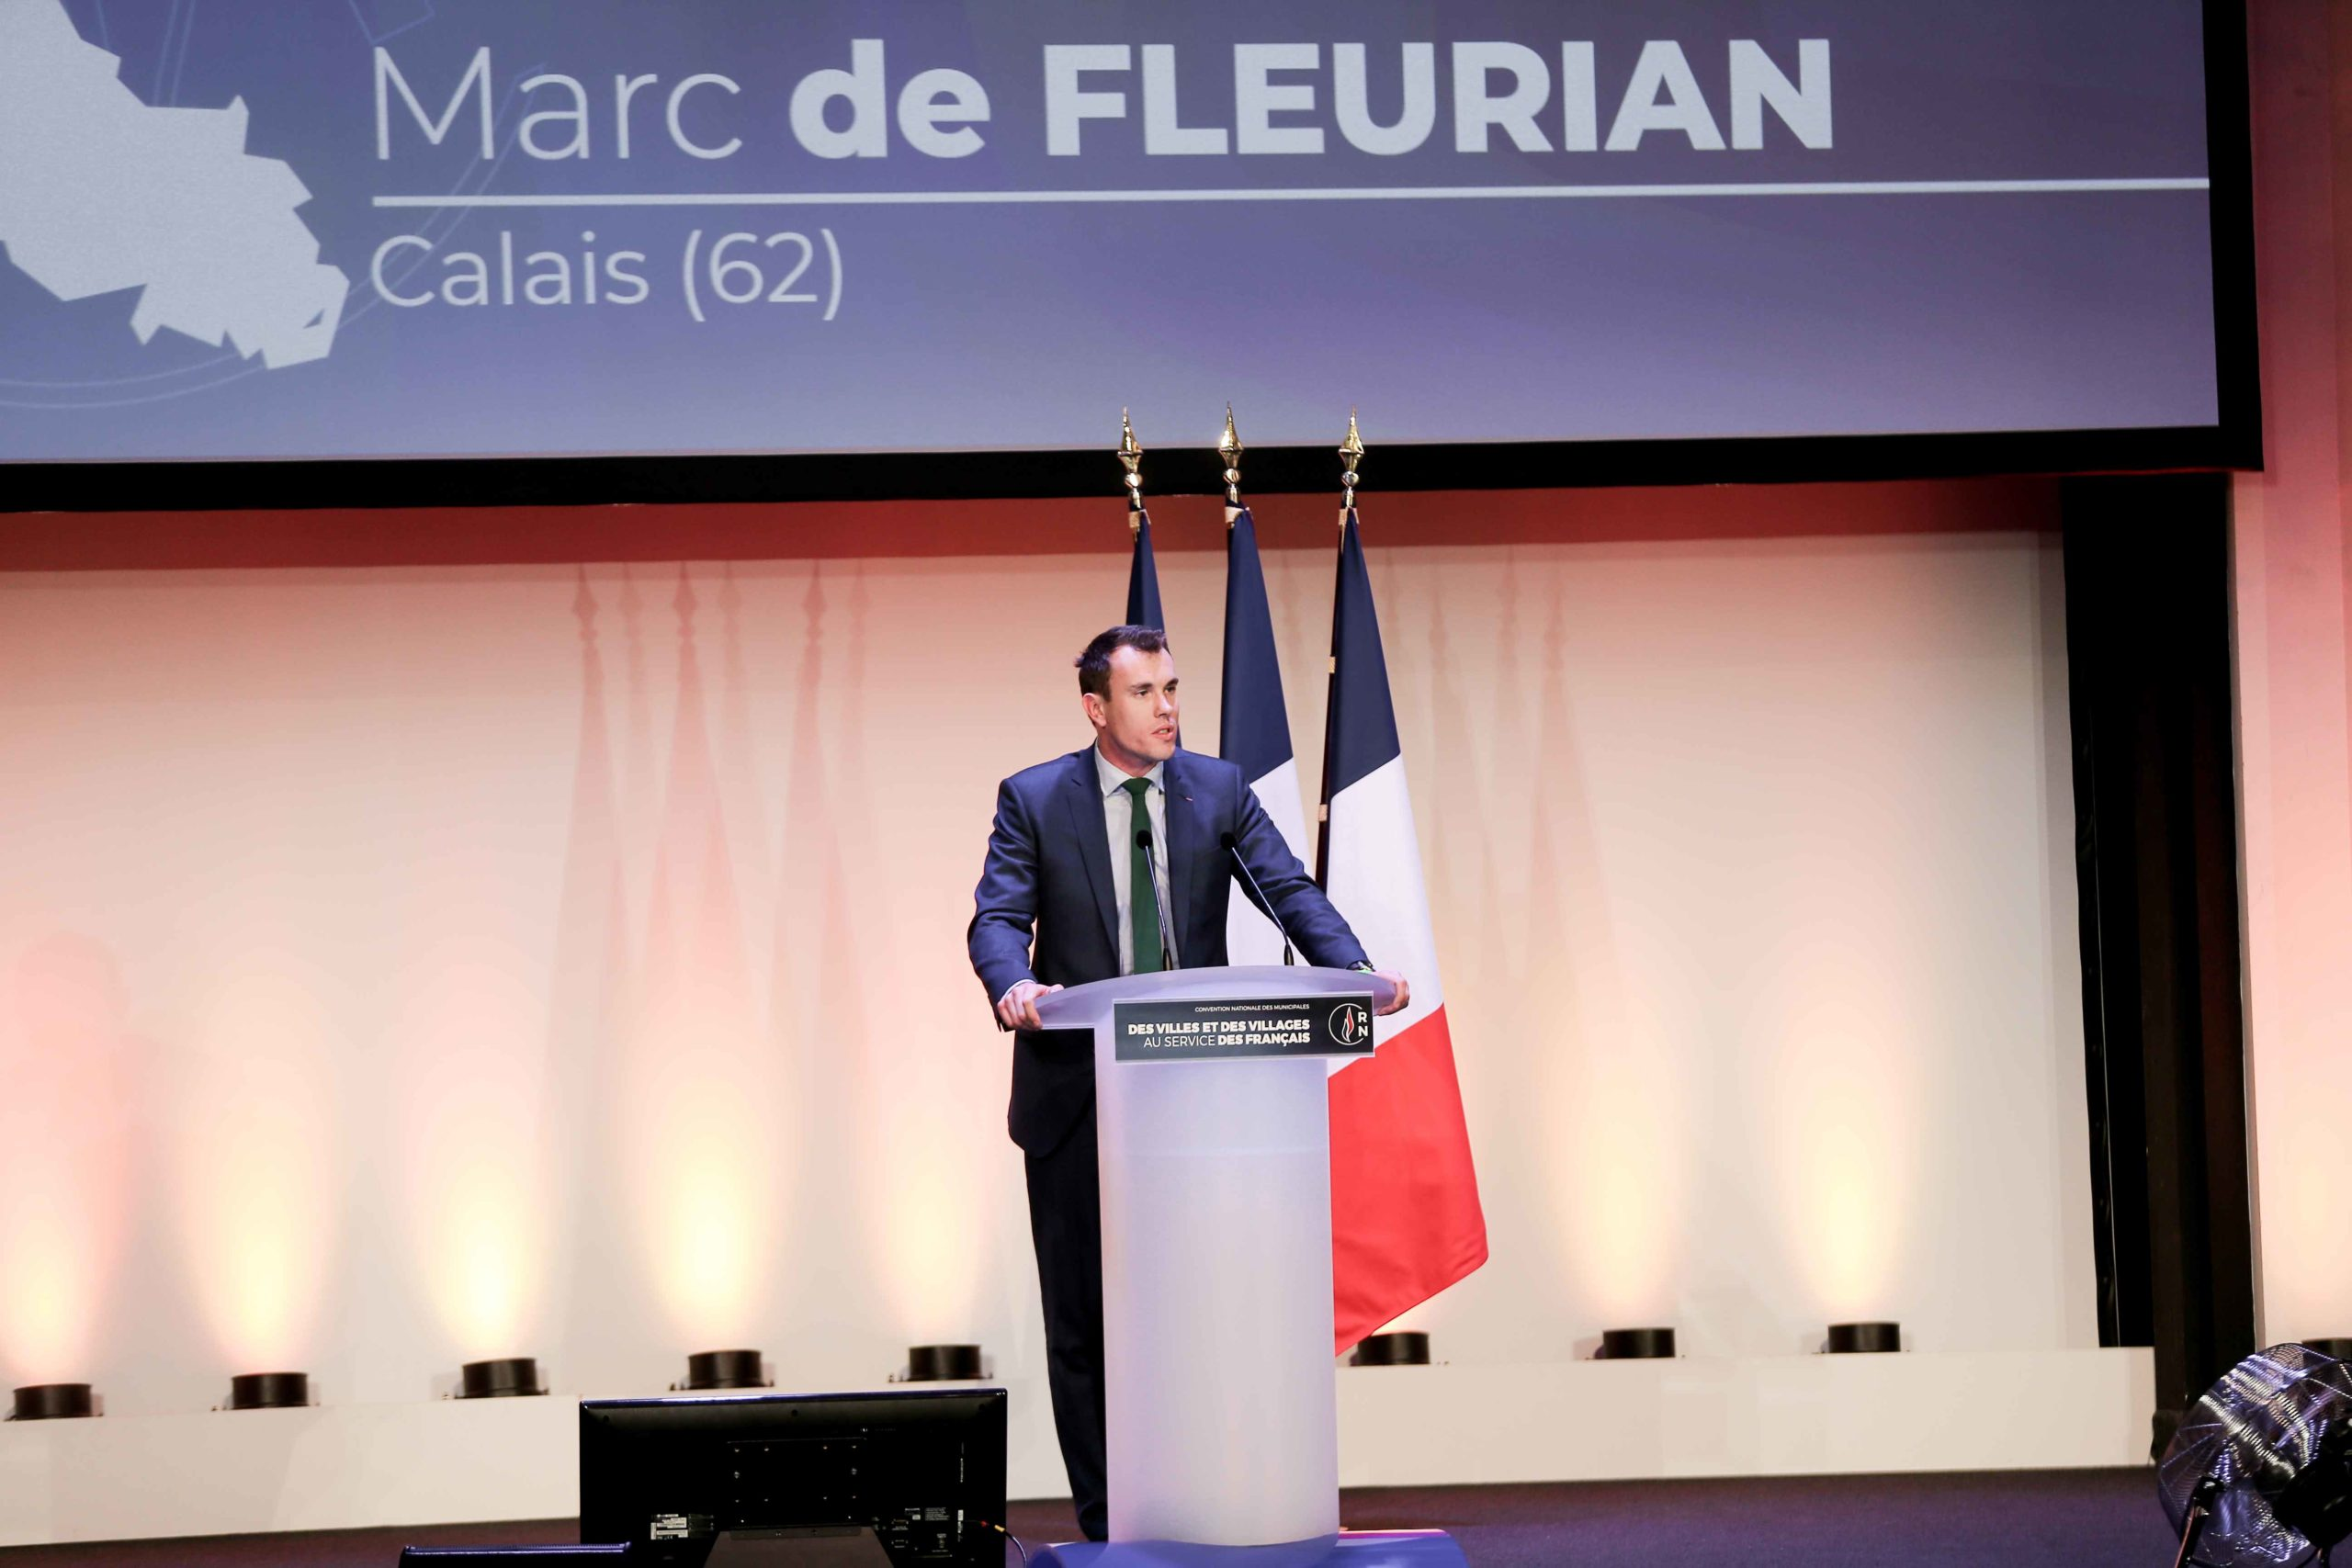 Marc de Fleurian, the Rassemblement national (RN) candidate in the forthcoming mayoral election in Calais (Pas-de-Calais), speaks in Paris, on January 12, 2020, during a meeting to launch the RN campaign candidates for the next municipal elections.  The 20